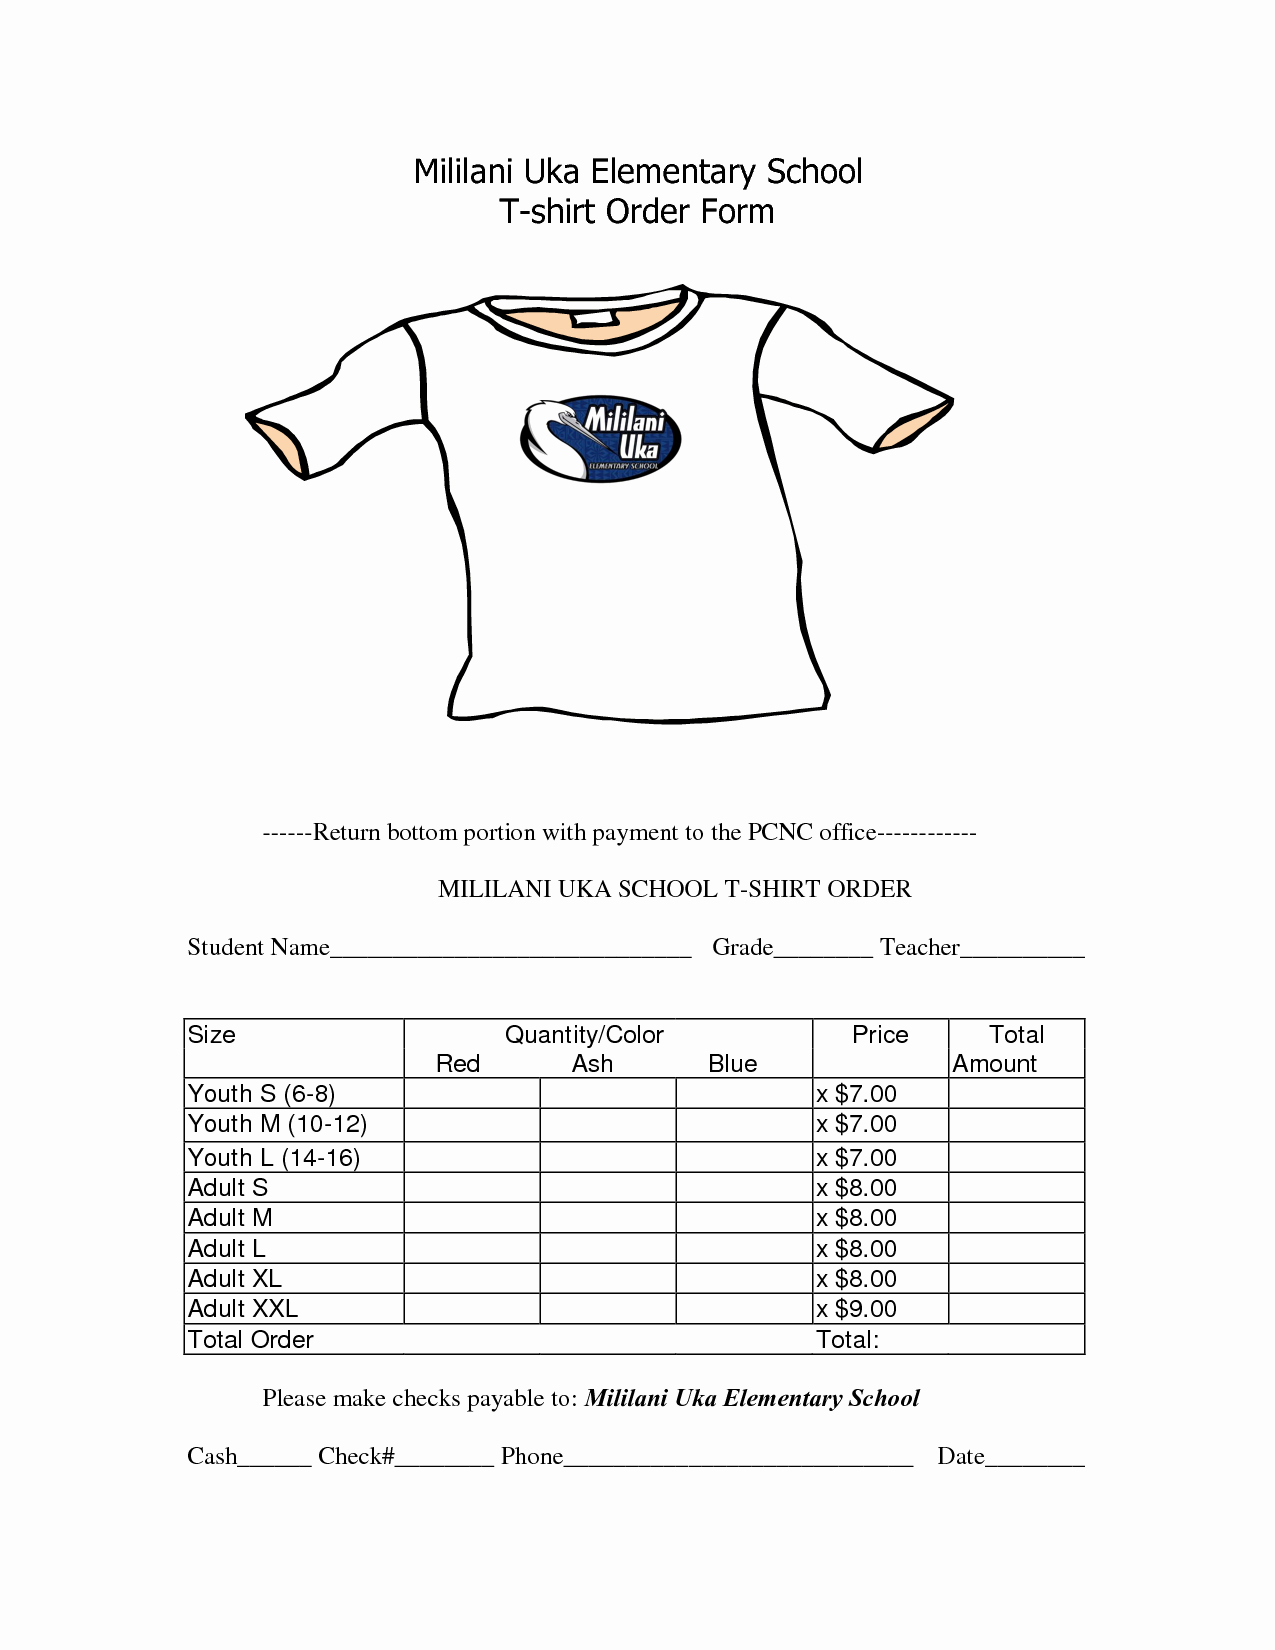 Tshirt order form Template Inspirational School T Shirt order form Template Clothes